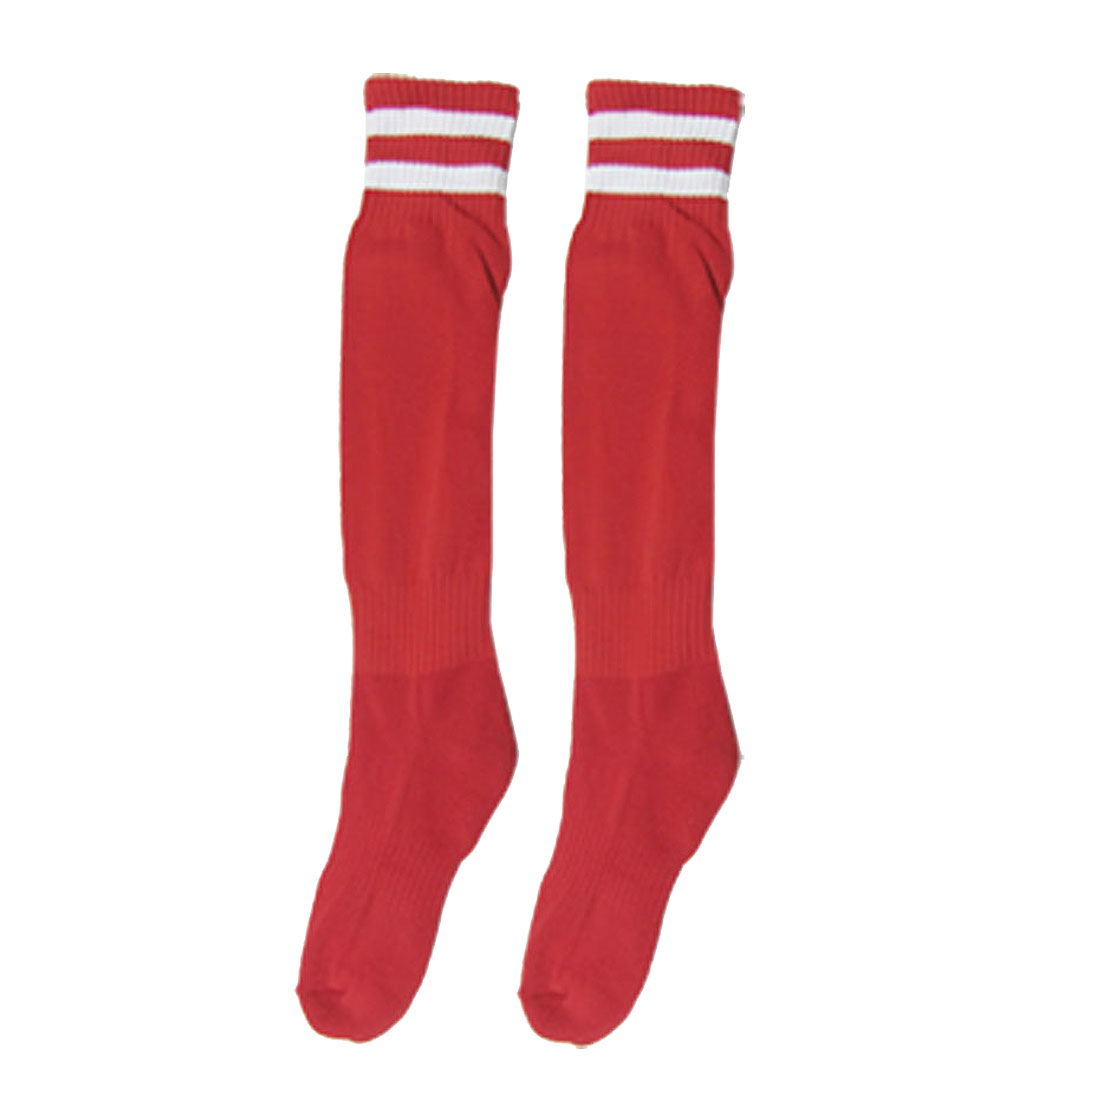 Man Red White Bar Elastic Sports Football Stockings